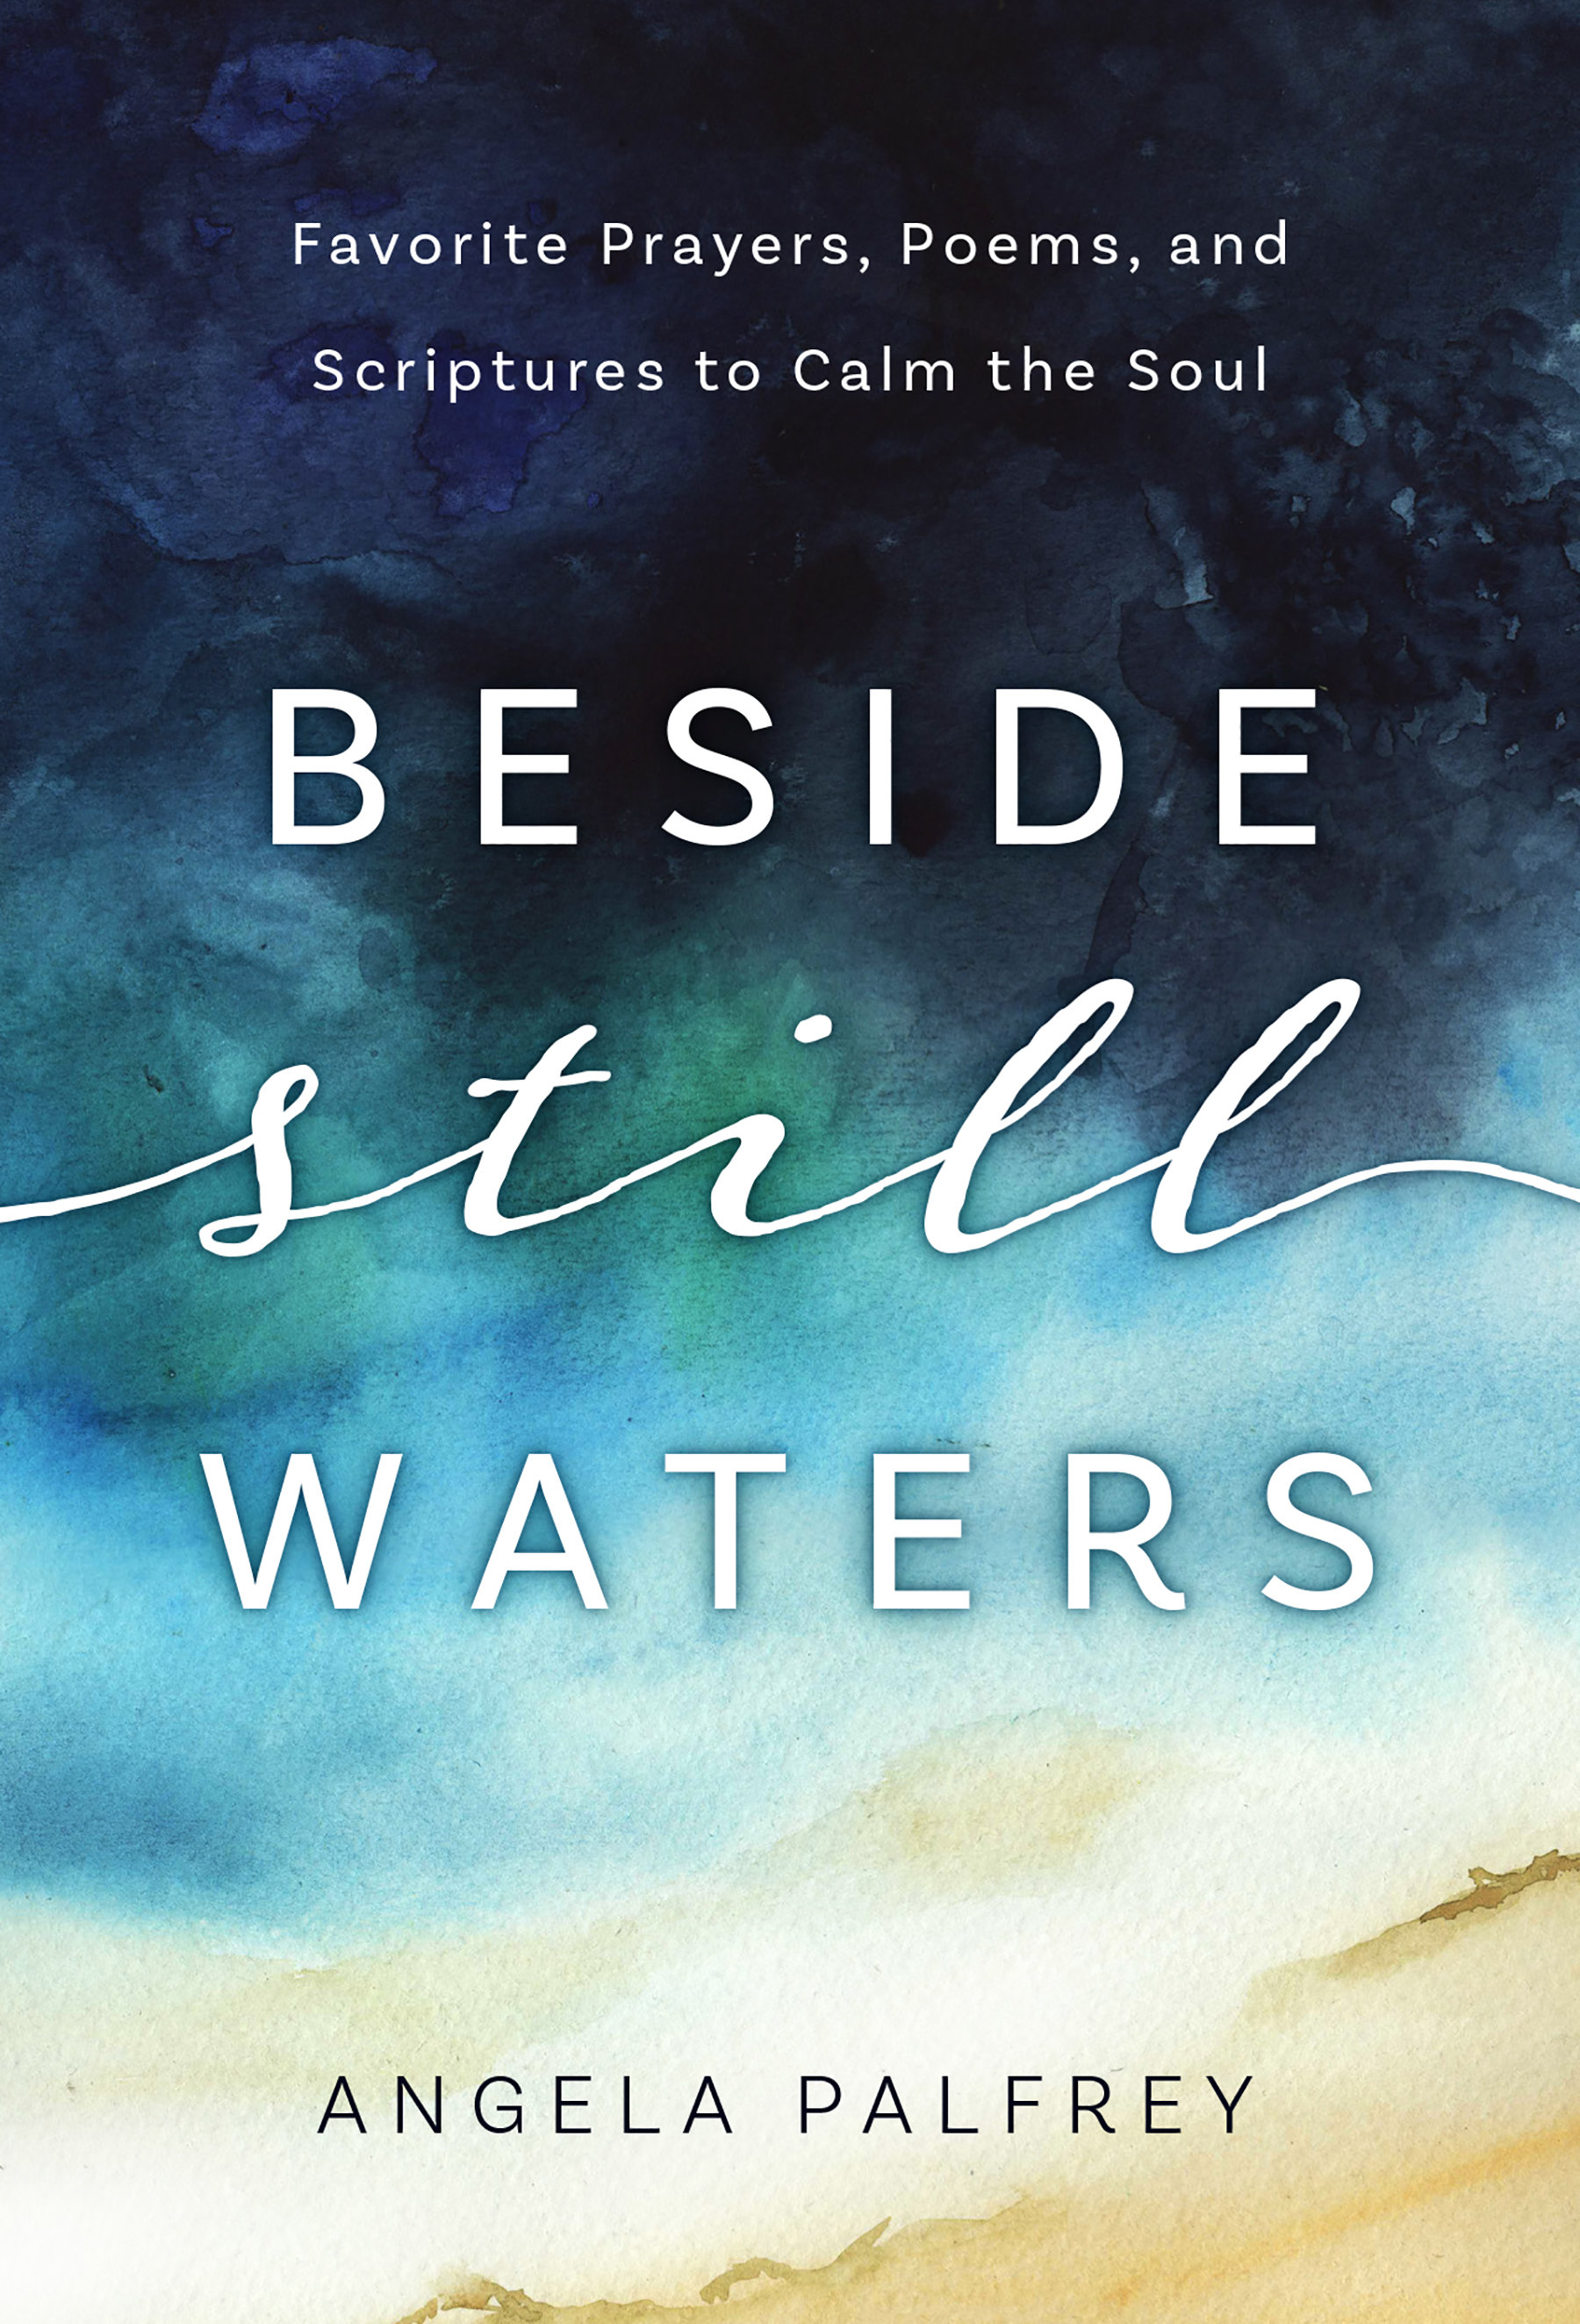 Beside Still Waters: Favorite Prayers, Poems, and Scriptures to Calm the Soul